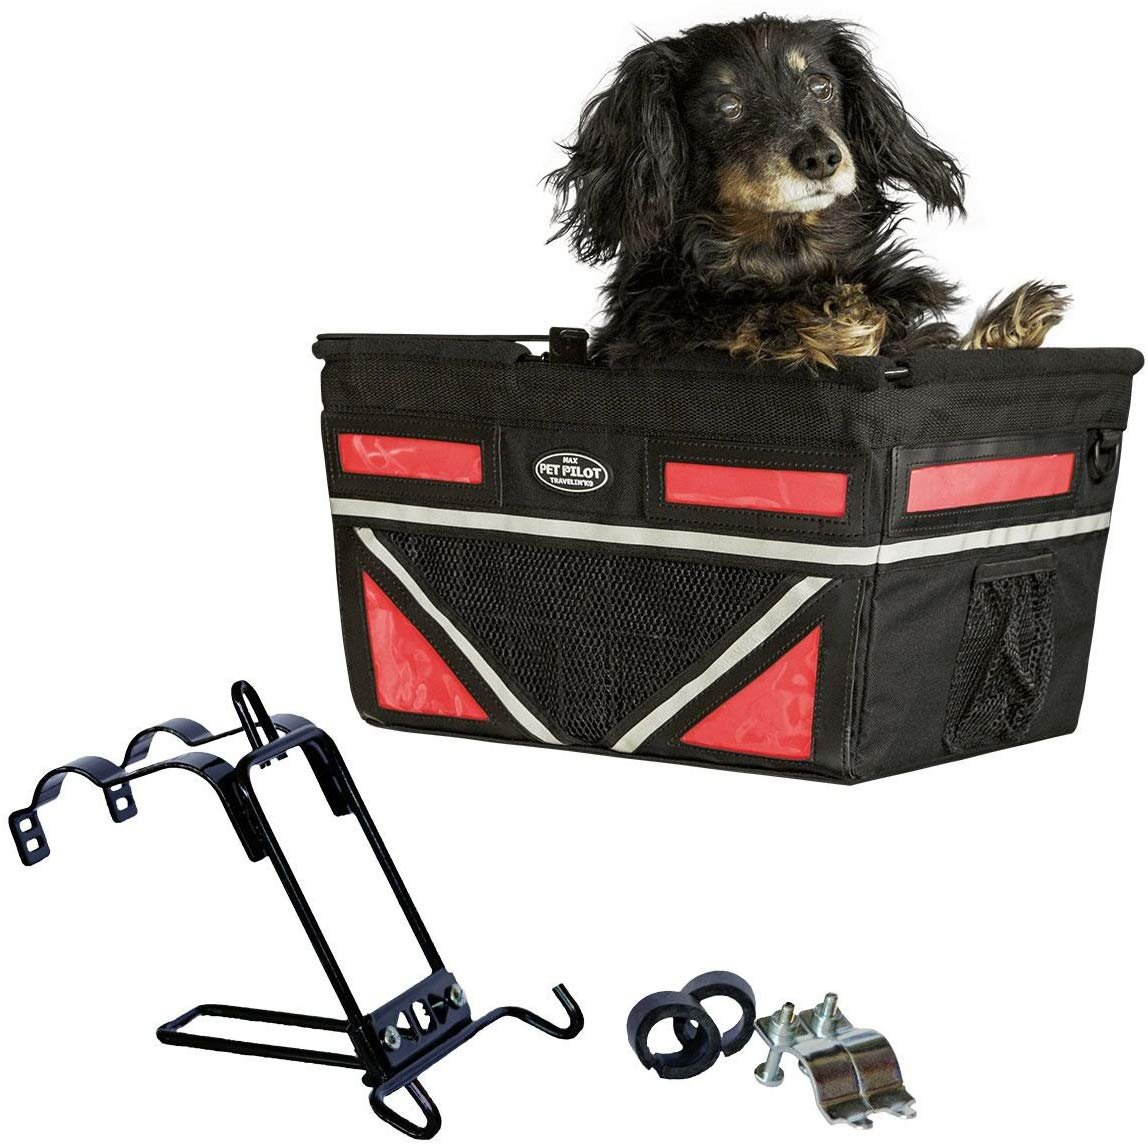 Travelin K9 2019 Pet-Pilot MAX Large Bike Basket for Dogs & Cats, Cherry Red